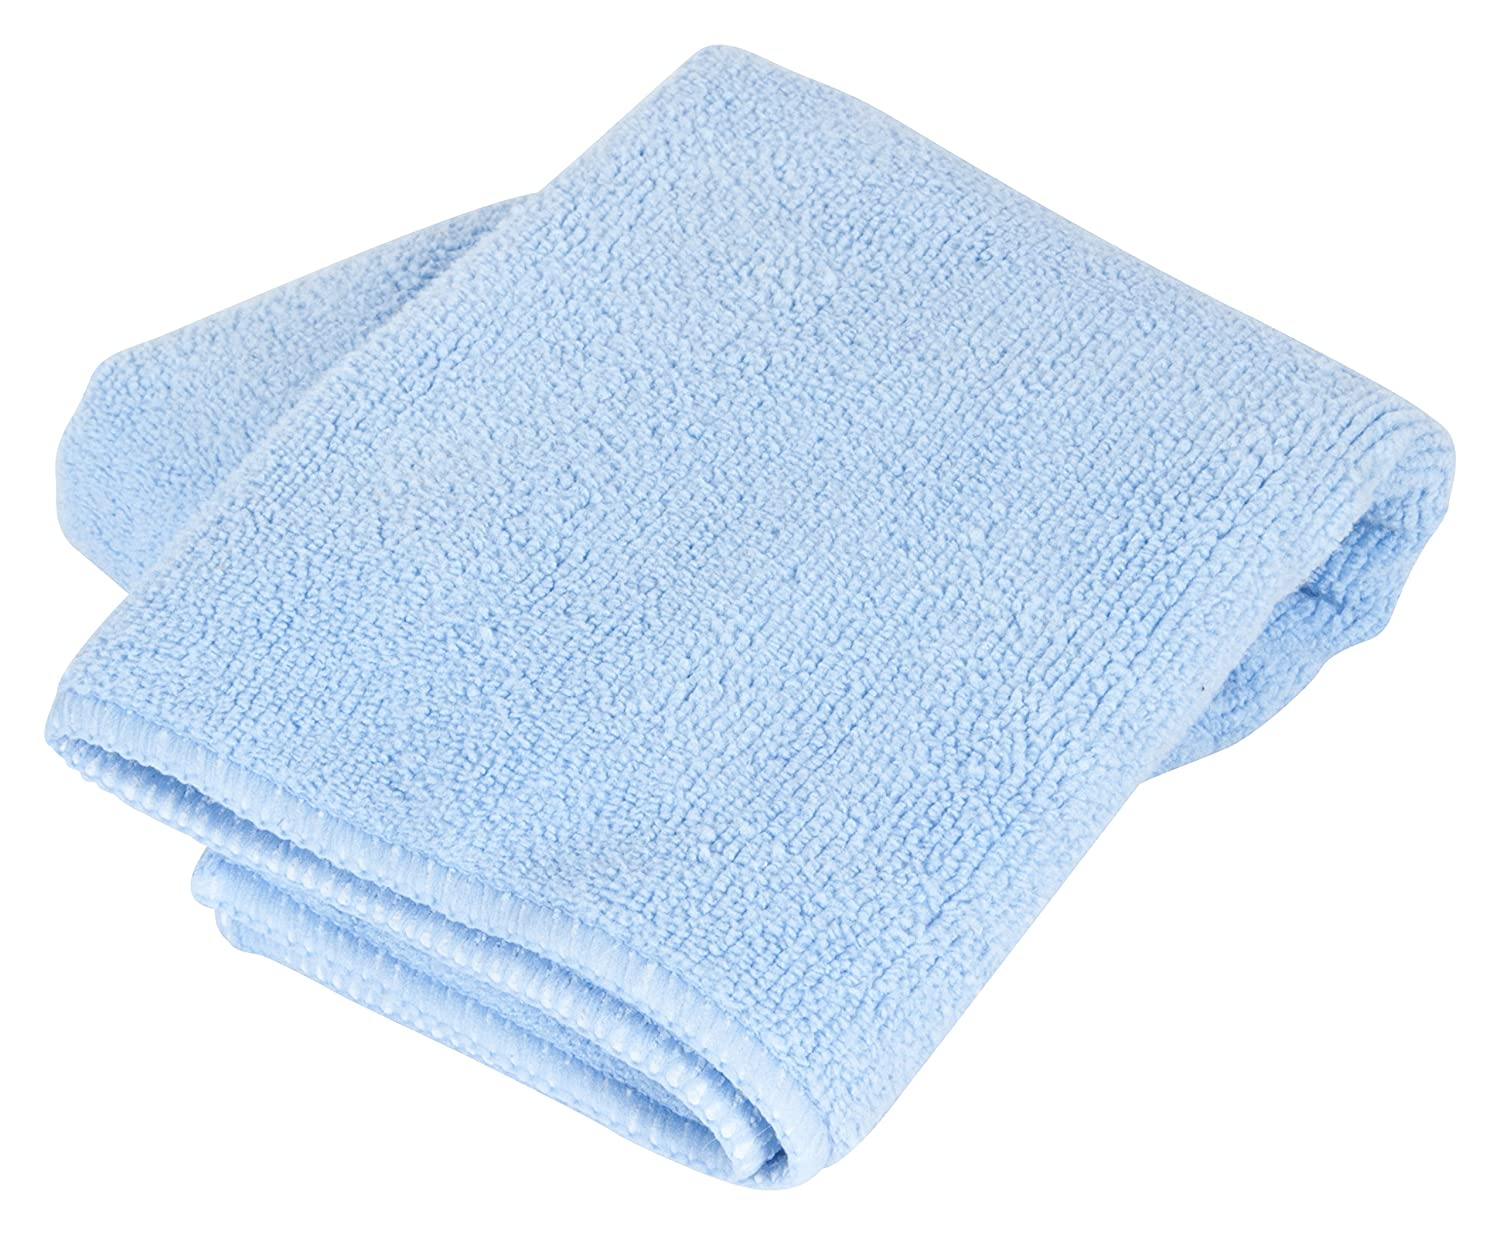 Microfiber tile grouting cloth